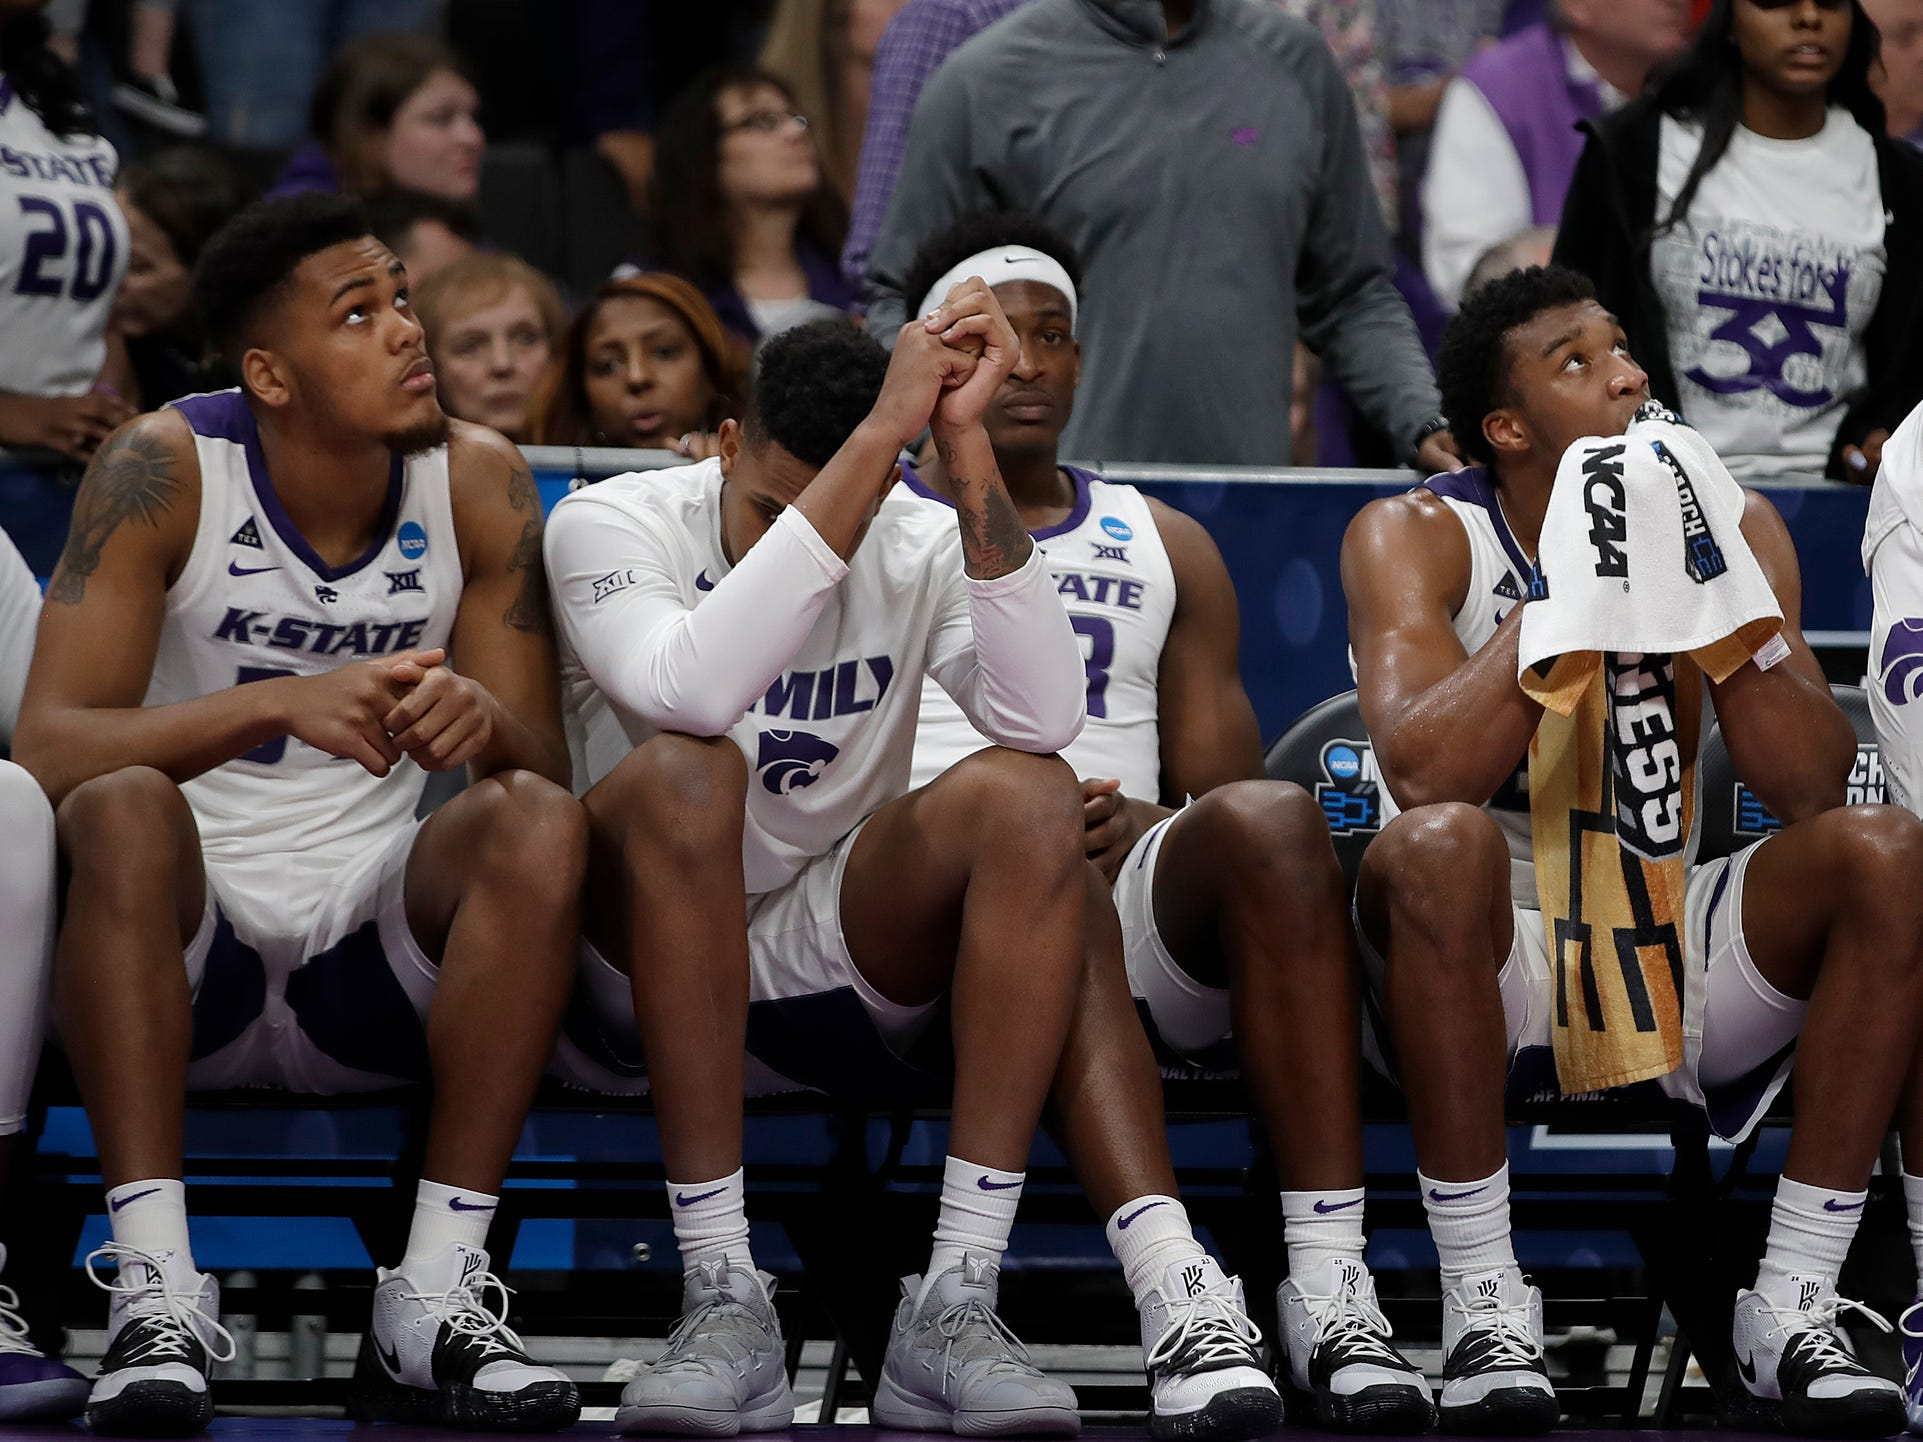 First round: No. 4 Kansas State loses to No. 13 UC Irvine, 70-64.